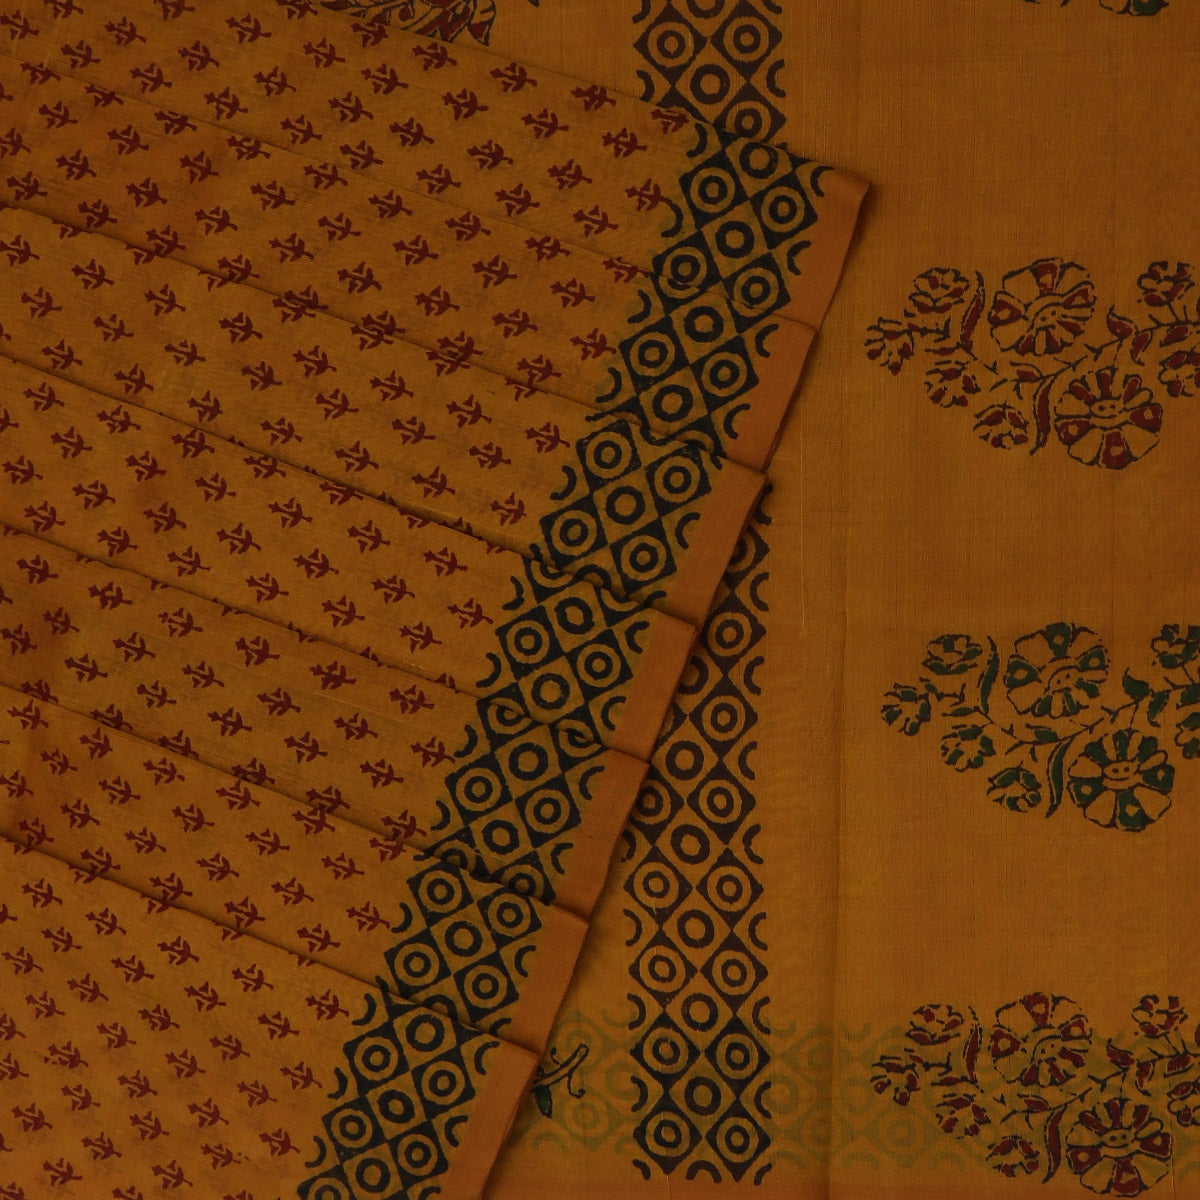 Printed Silk Cotton Saree Yellow with Simple border